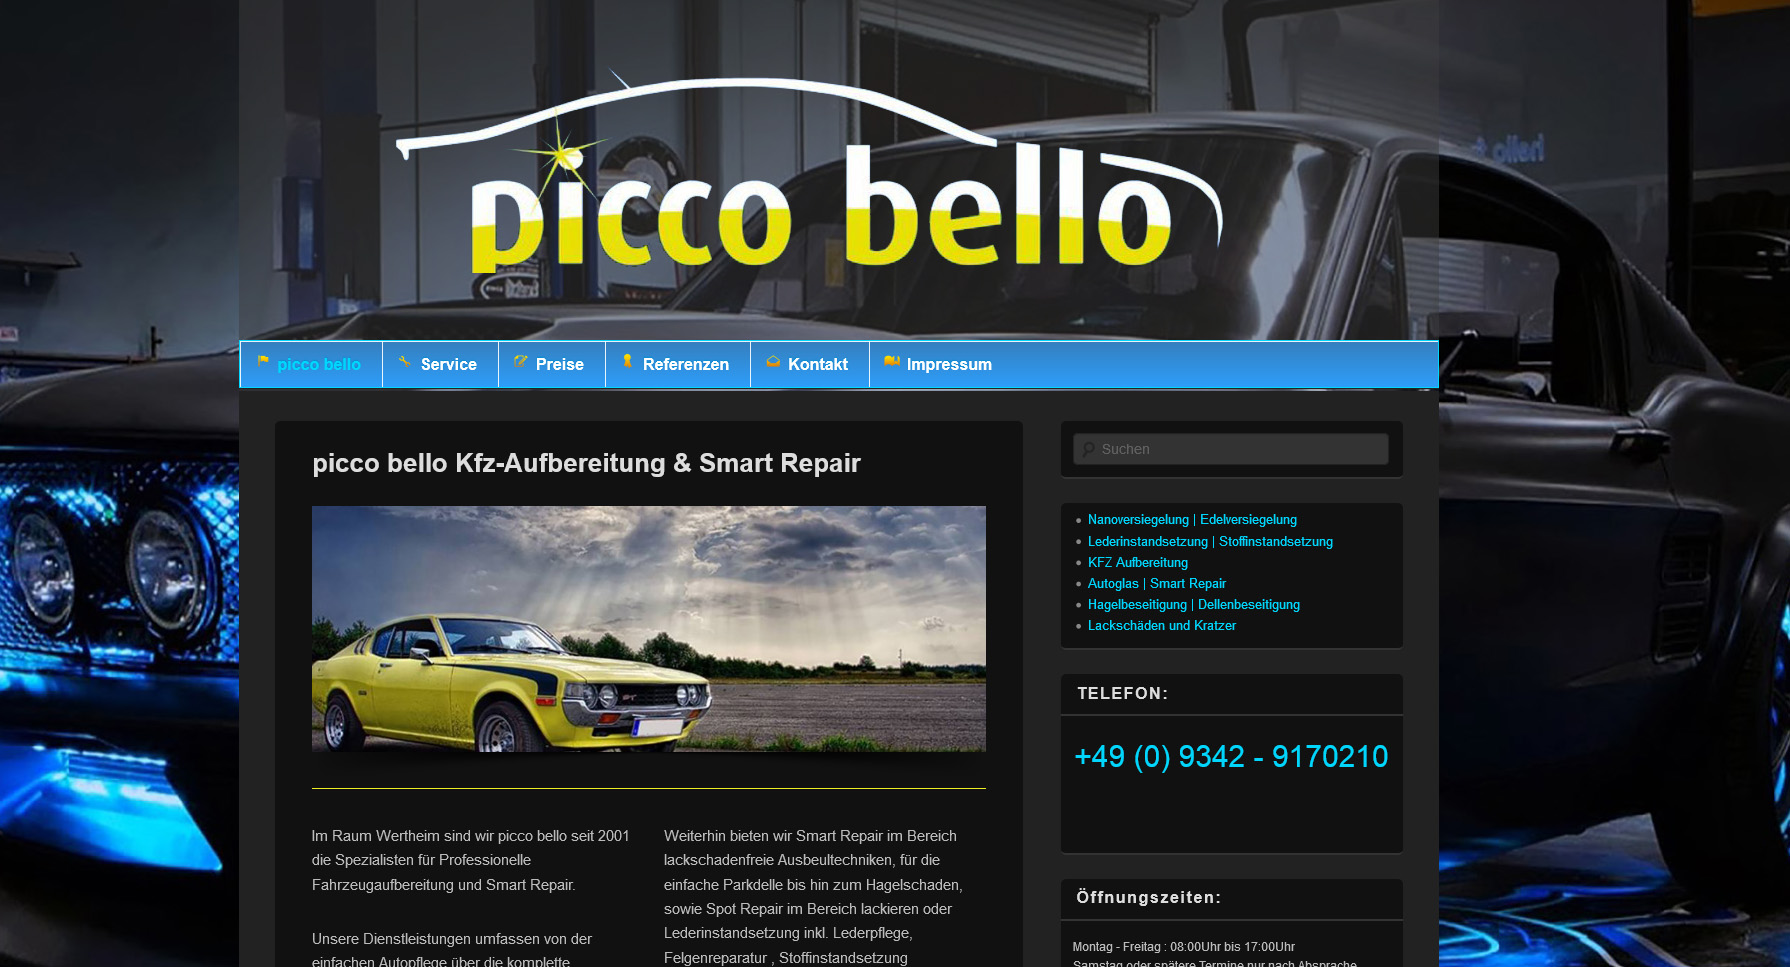 picco bello kfz aufbereitung smart repair picco bello. Black Bedroom Furniture Sets. Home Design Ideas